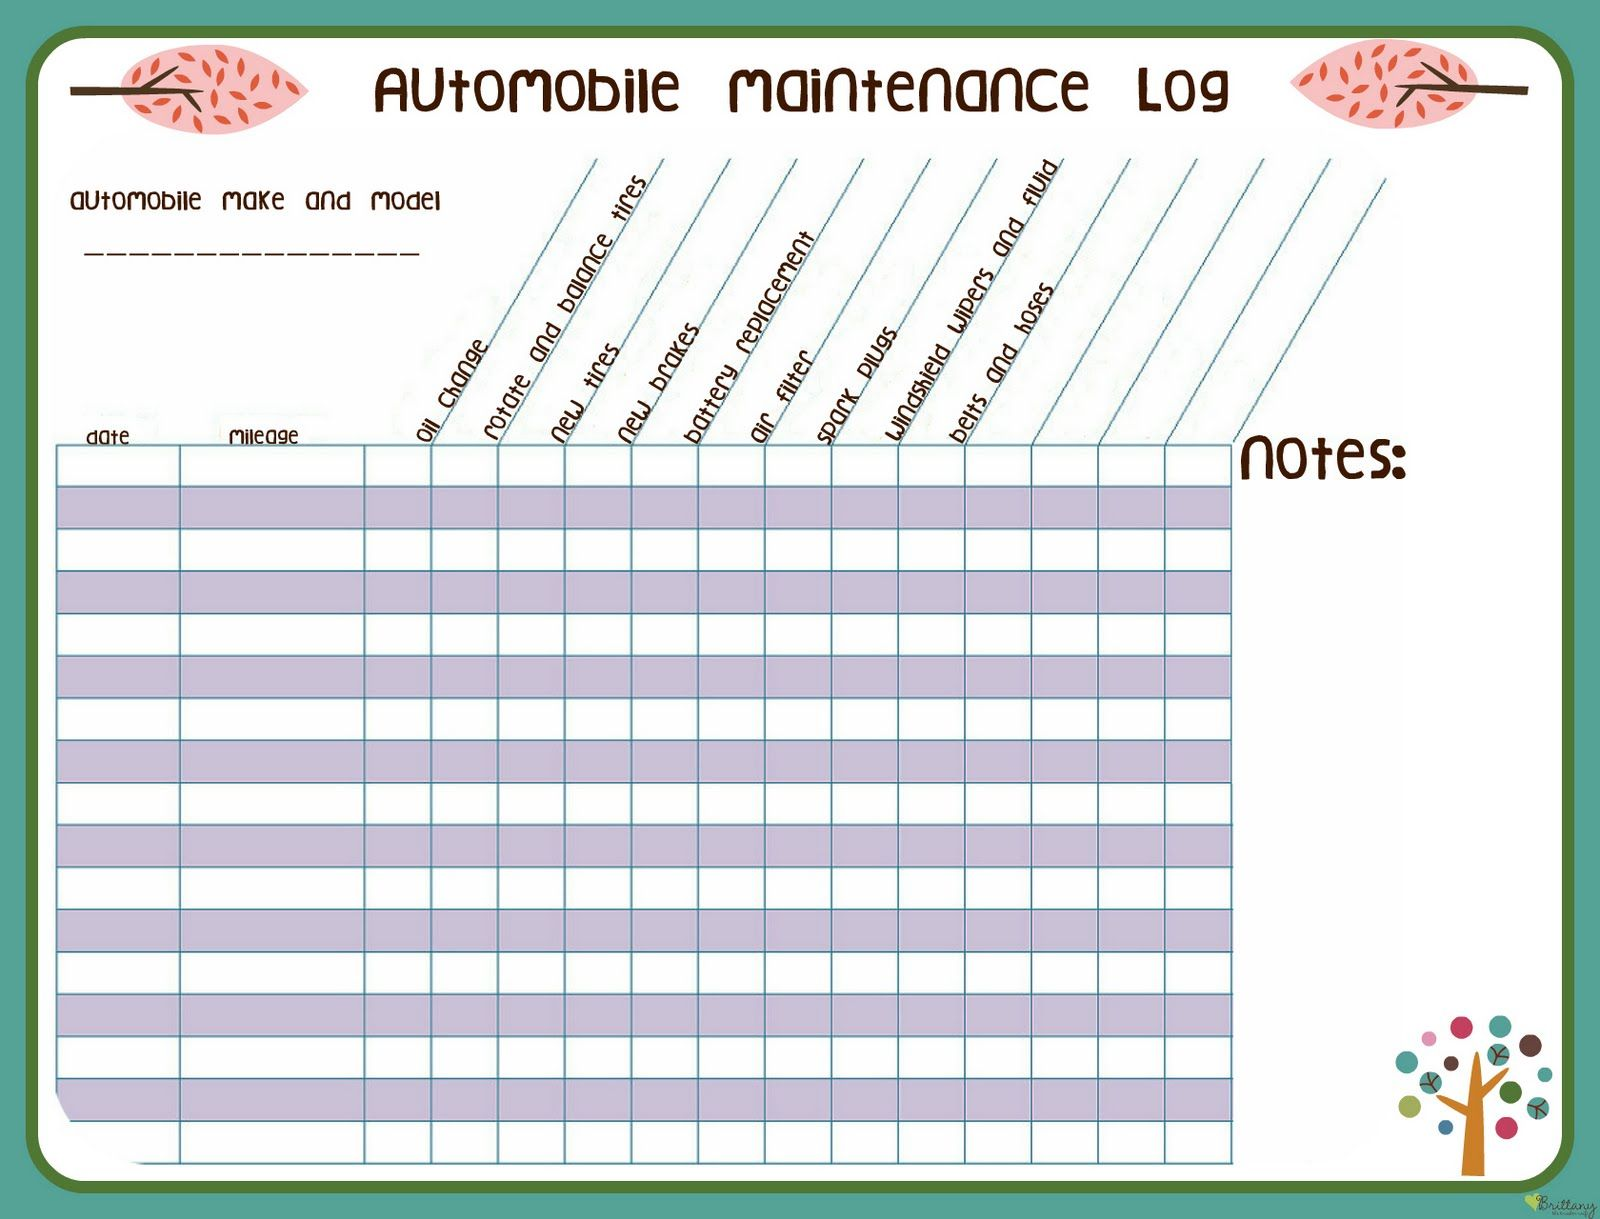 It's just a photo of Resource Car Maintenance Log Printable